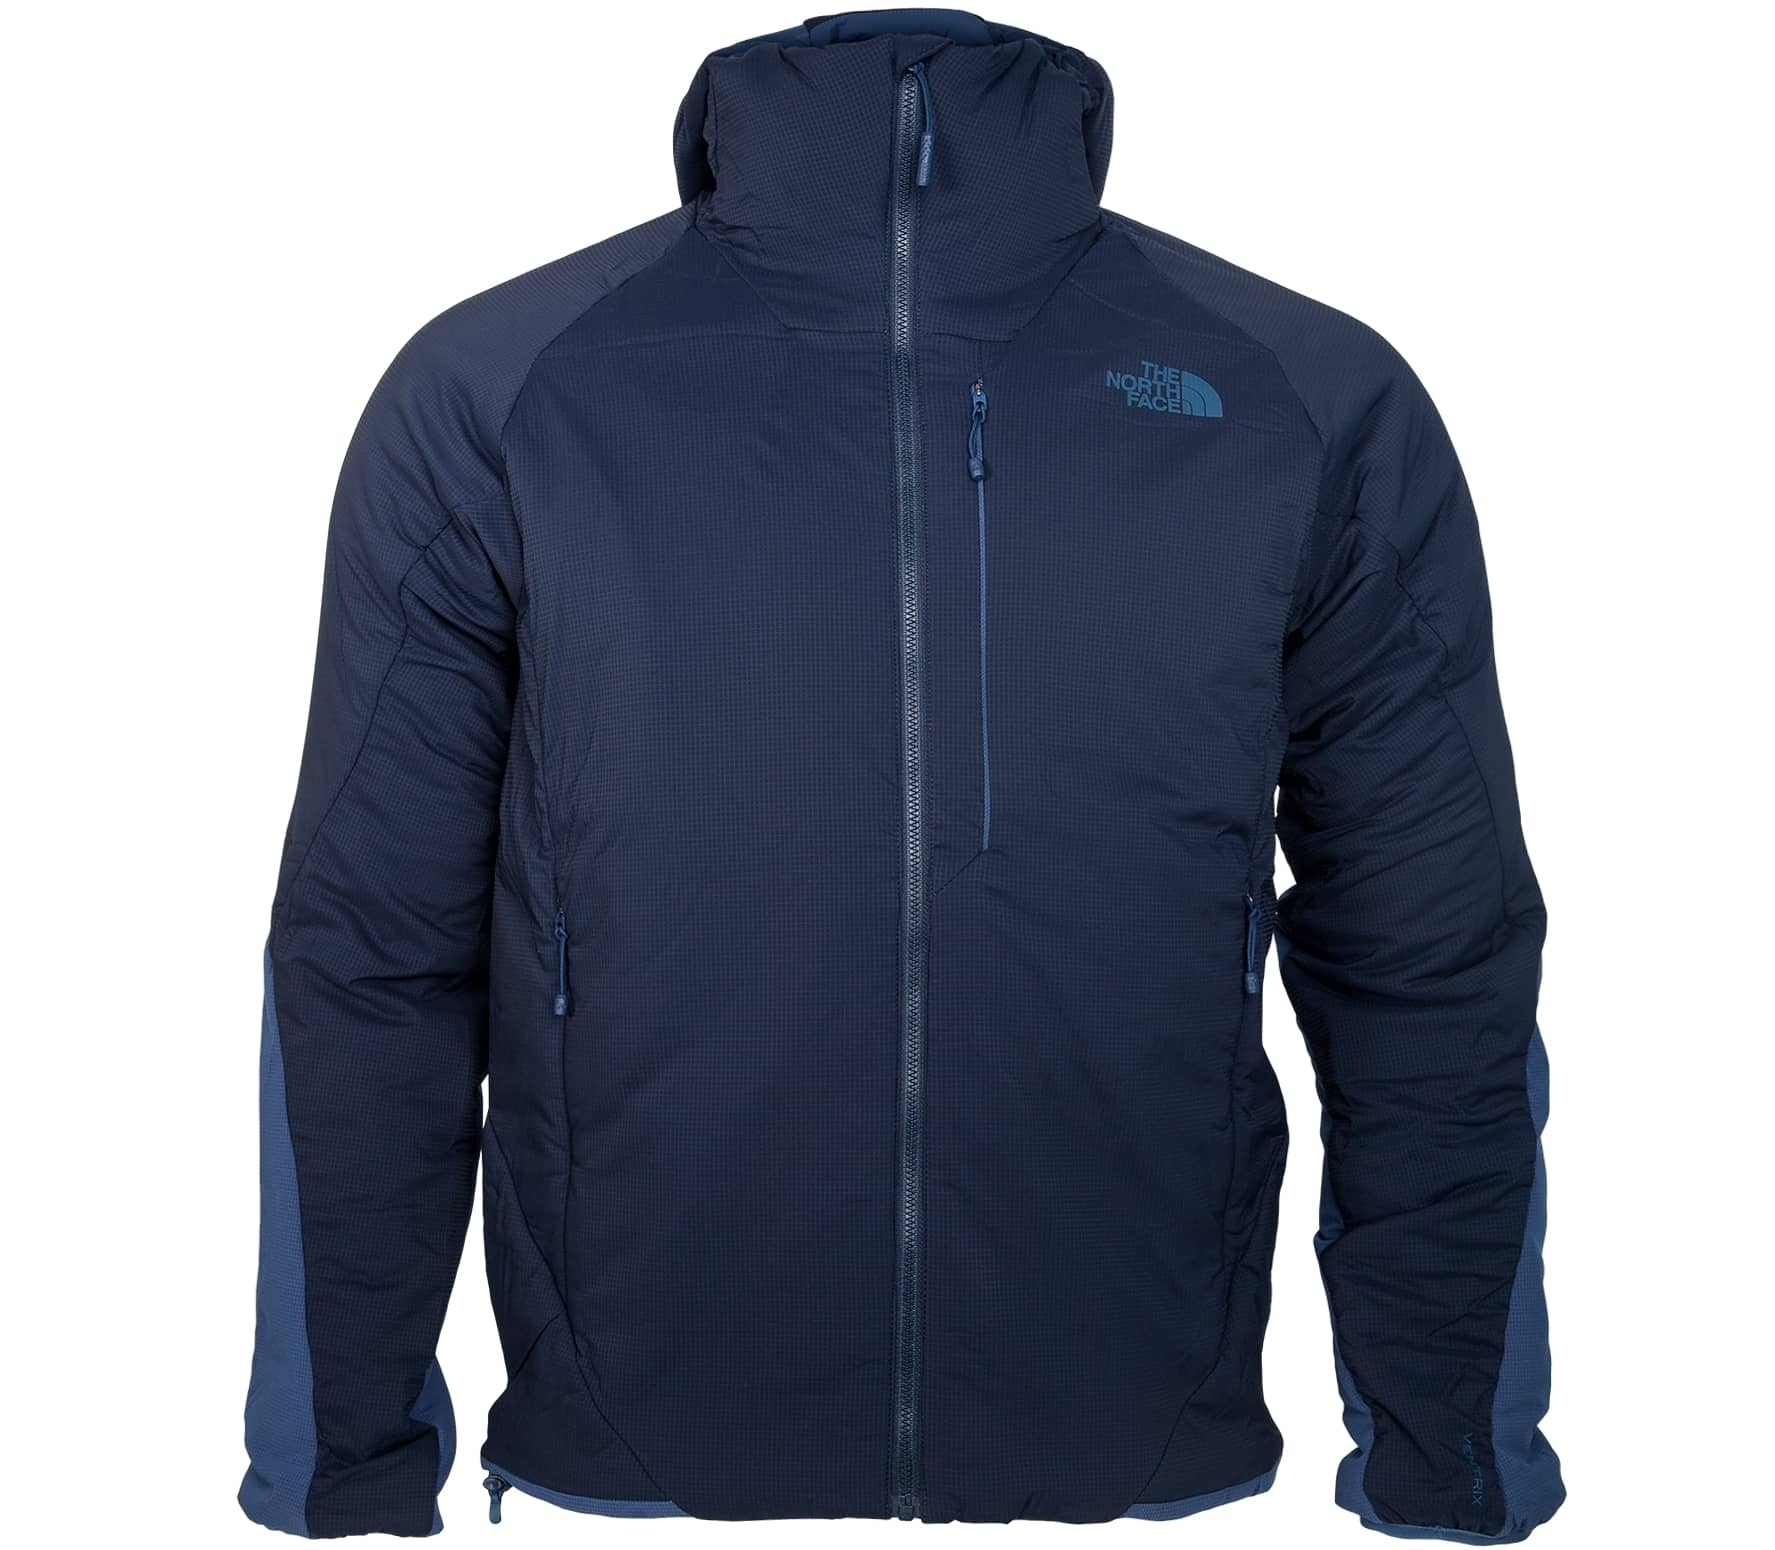 be375e6f17 The North Face - Ventrix hoodie men s insulating jacket (dark blue ...